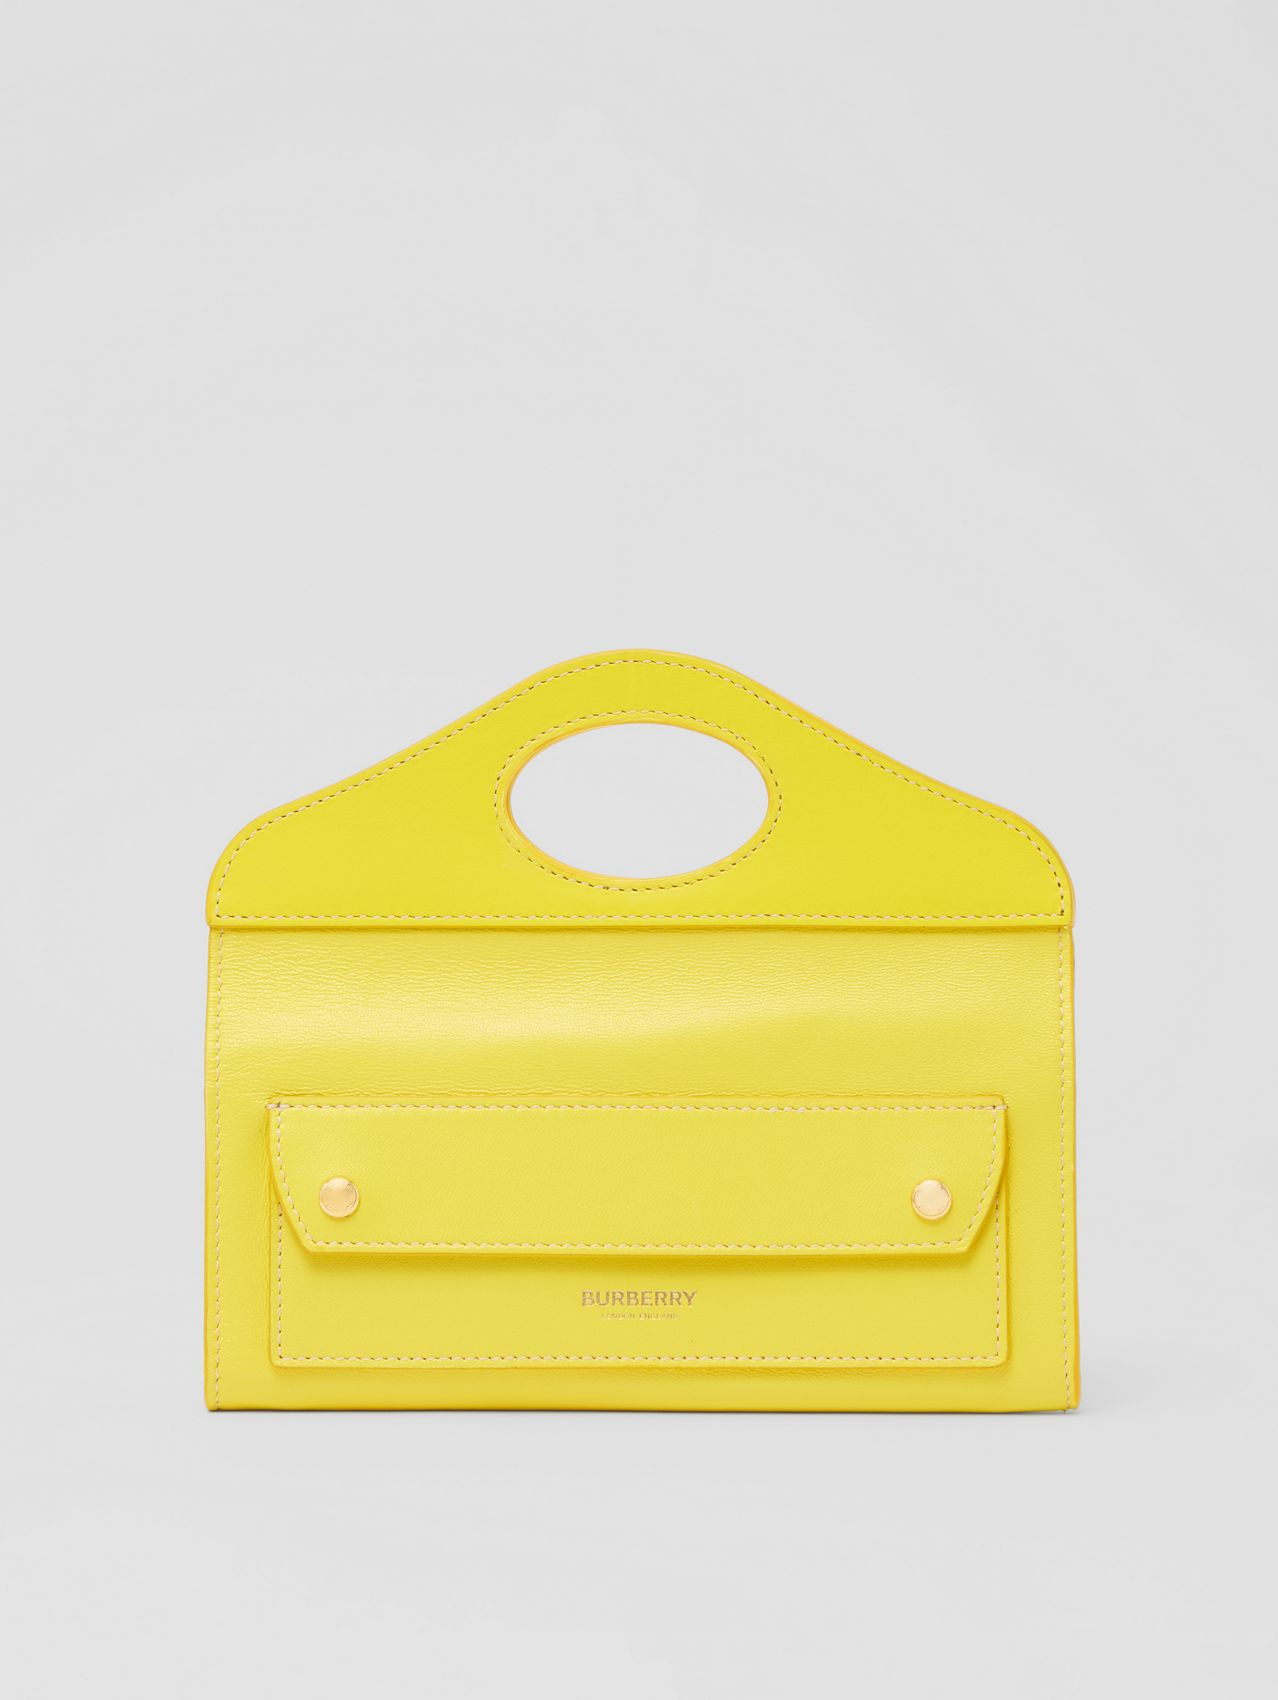 Mini Topstitched Lambskin Pocket Clutch in Marigold Yellow